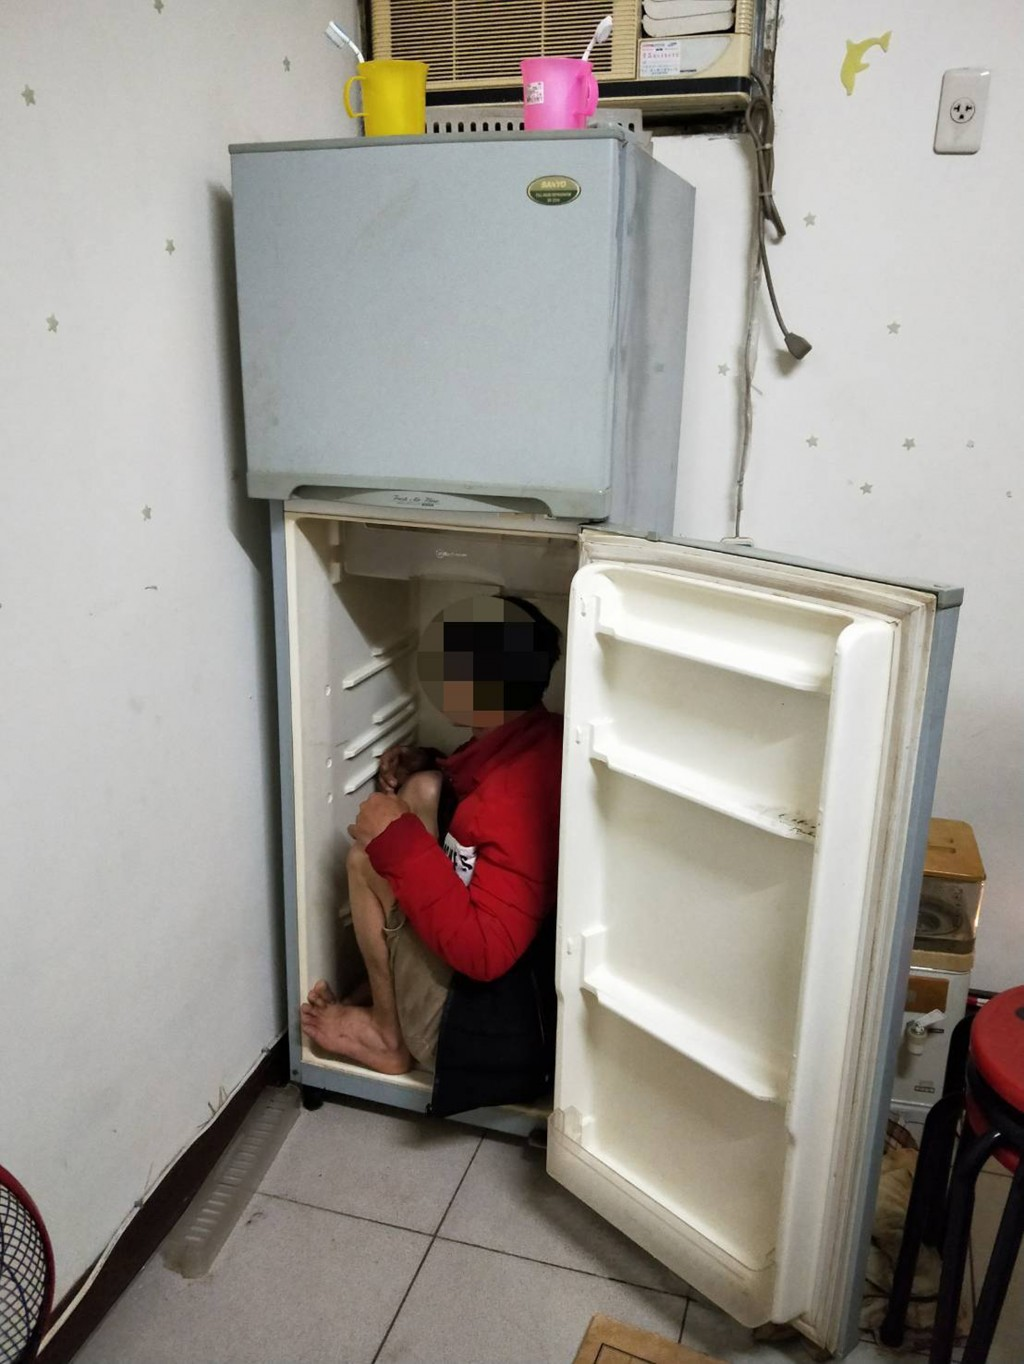 Police in Taichung found an illegal Vietnamese worker hiding inside a refrigerator.